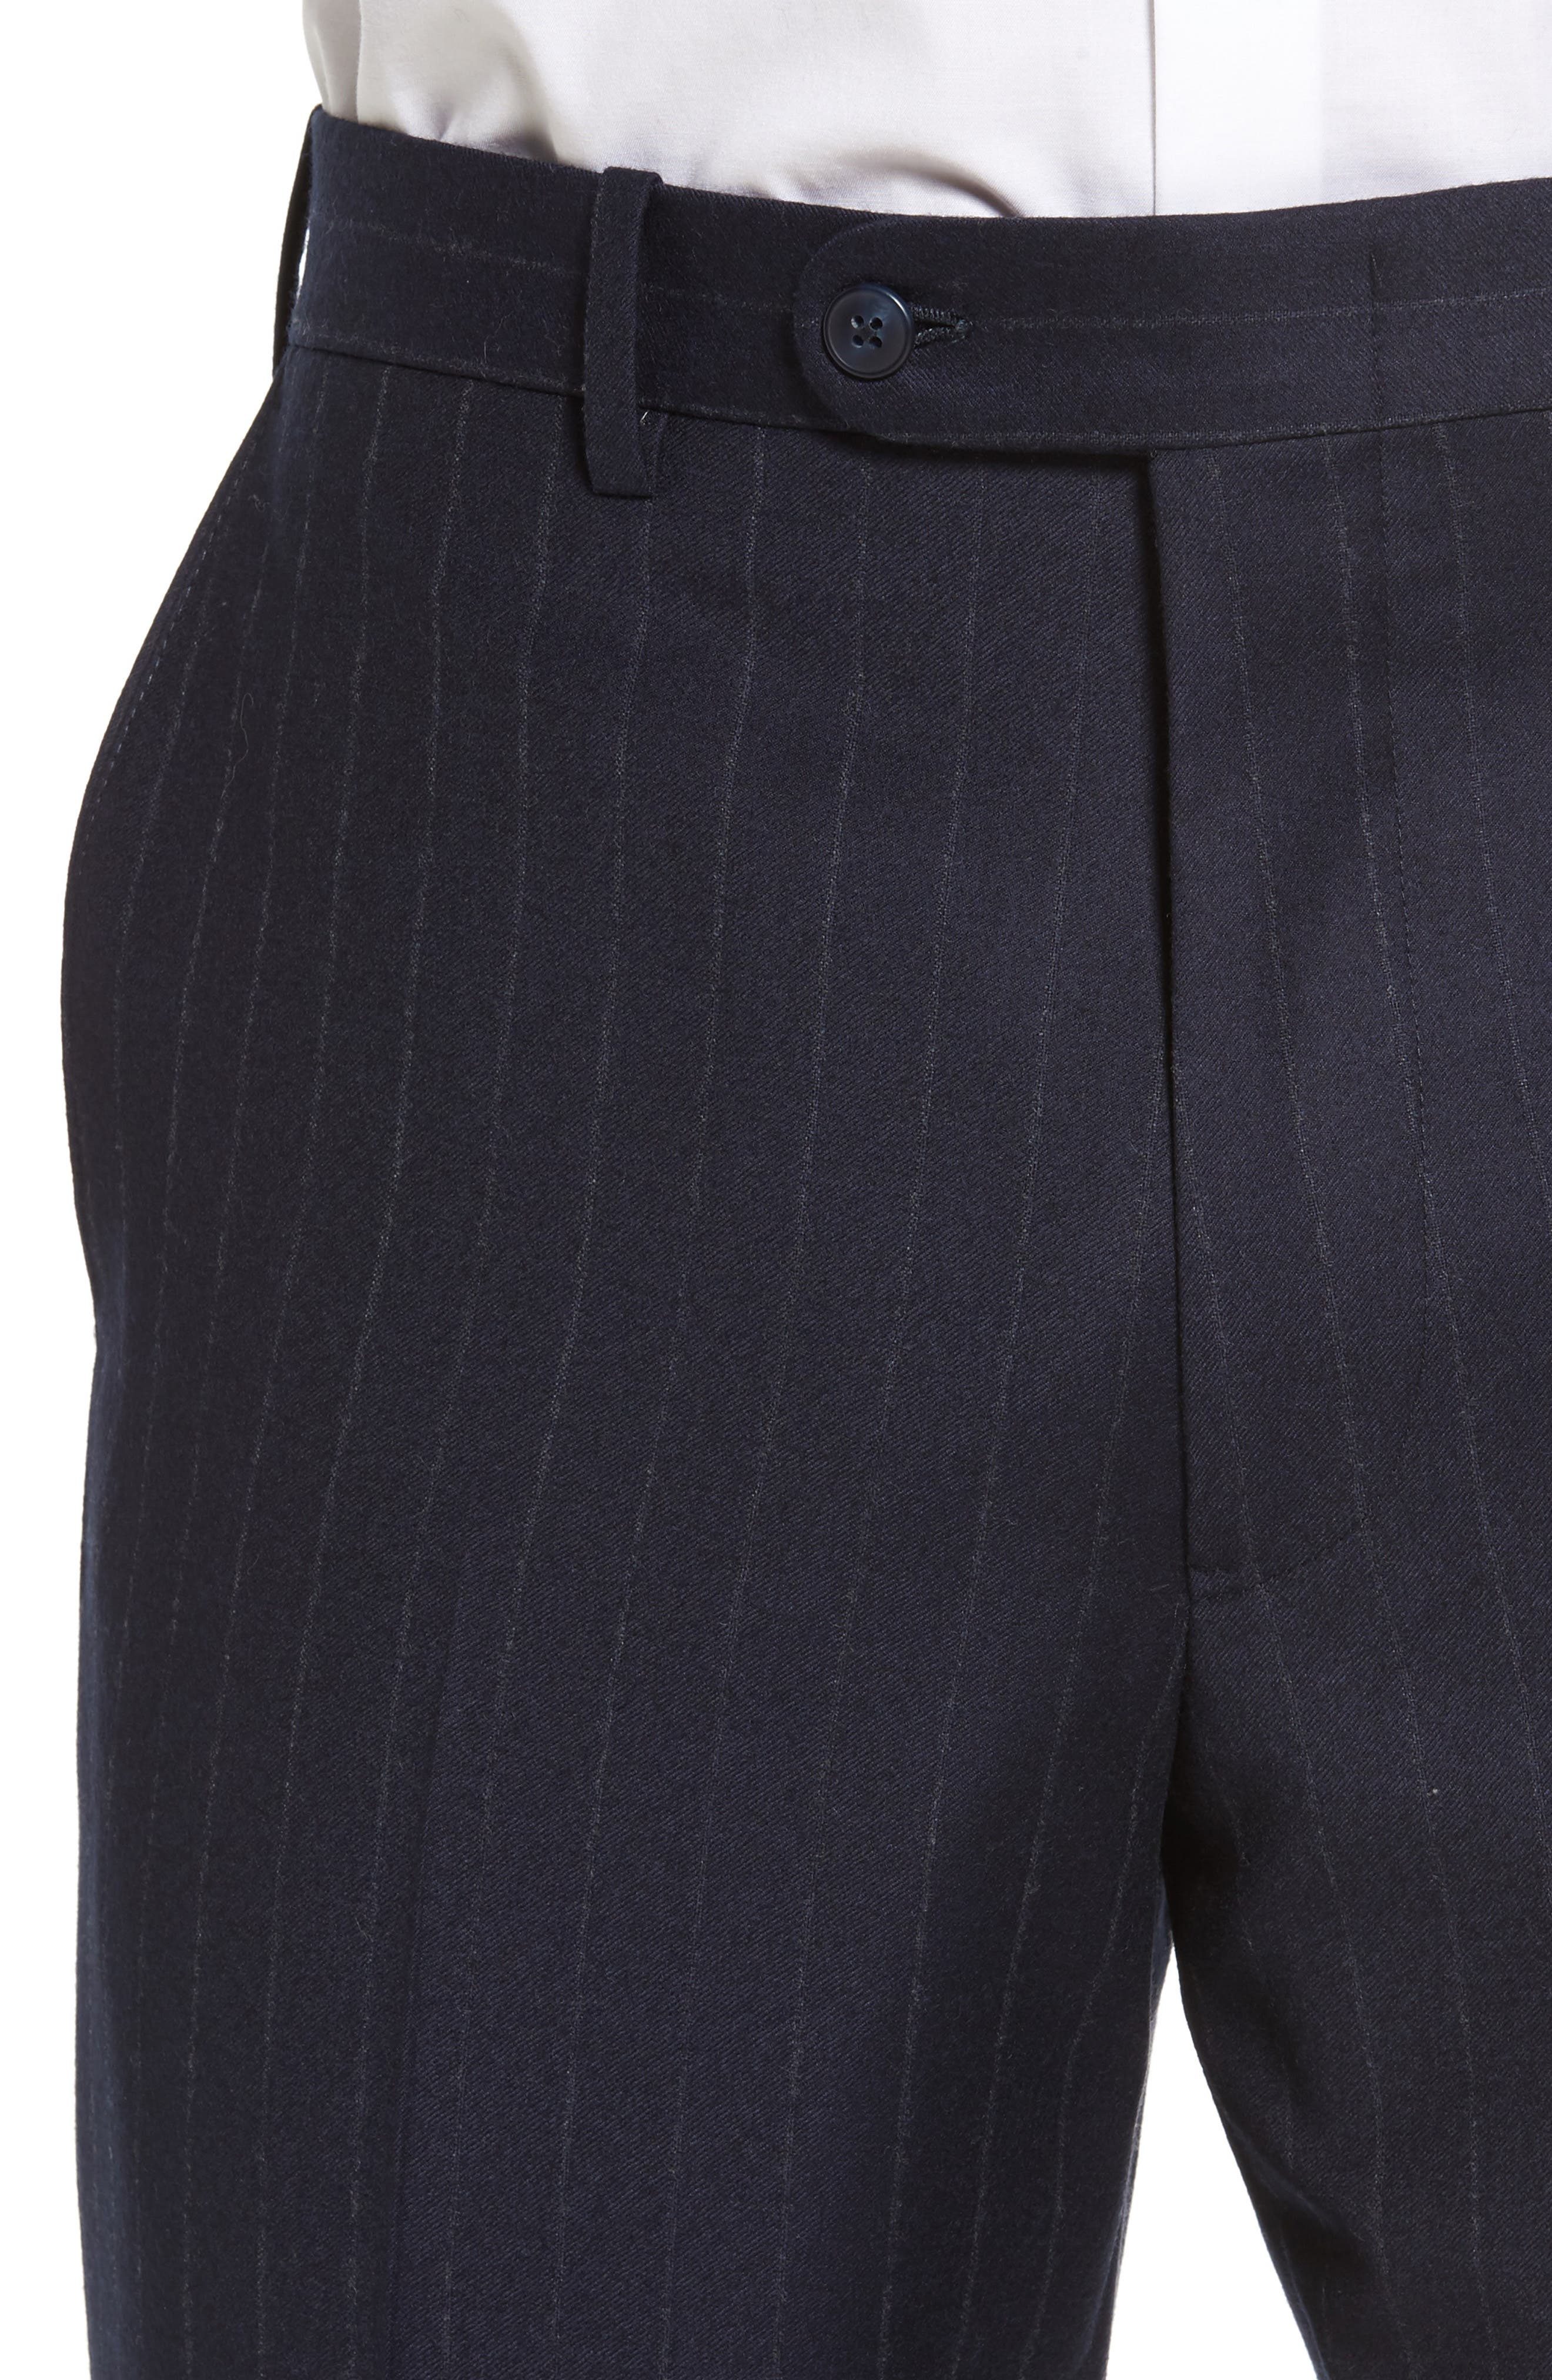 Alternate Image 4  - JB Britches Flat Front Chalk Stripe Wool Trousers